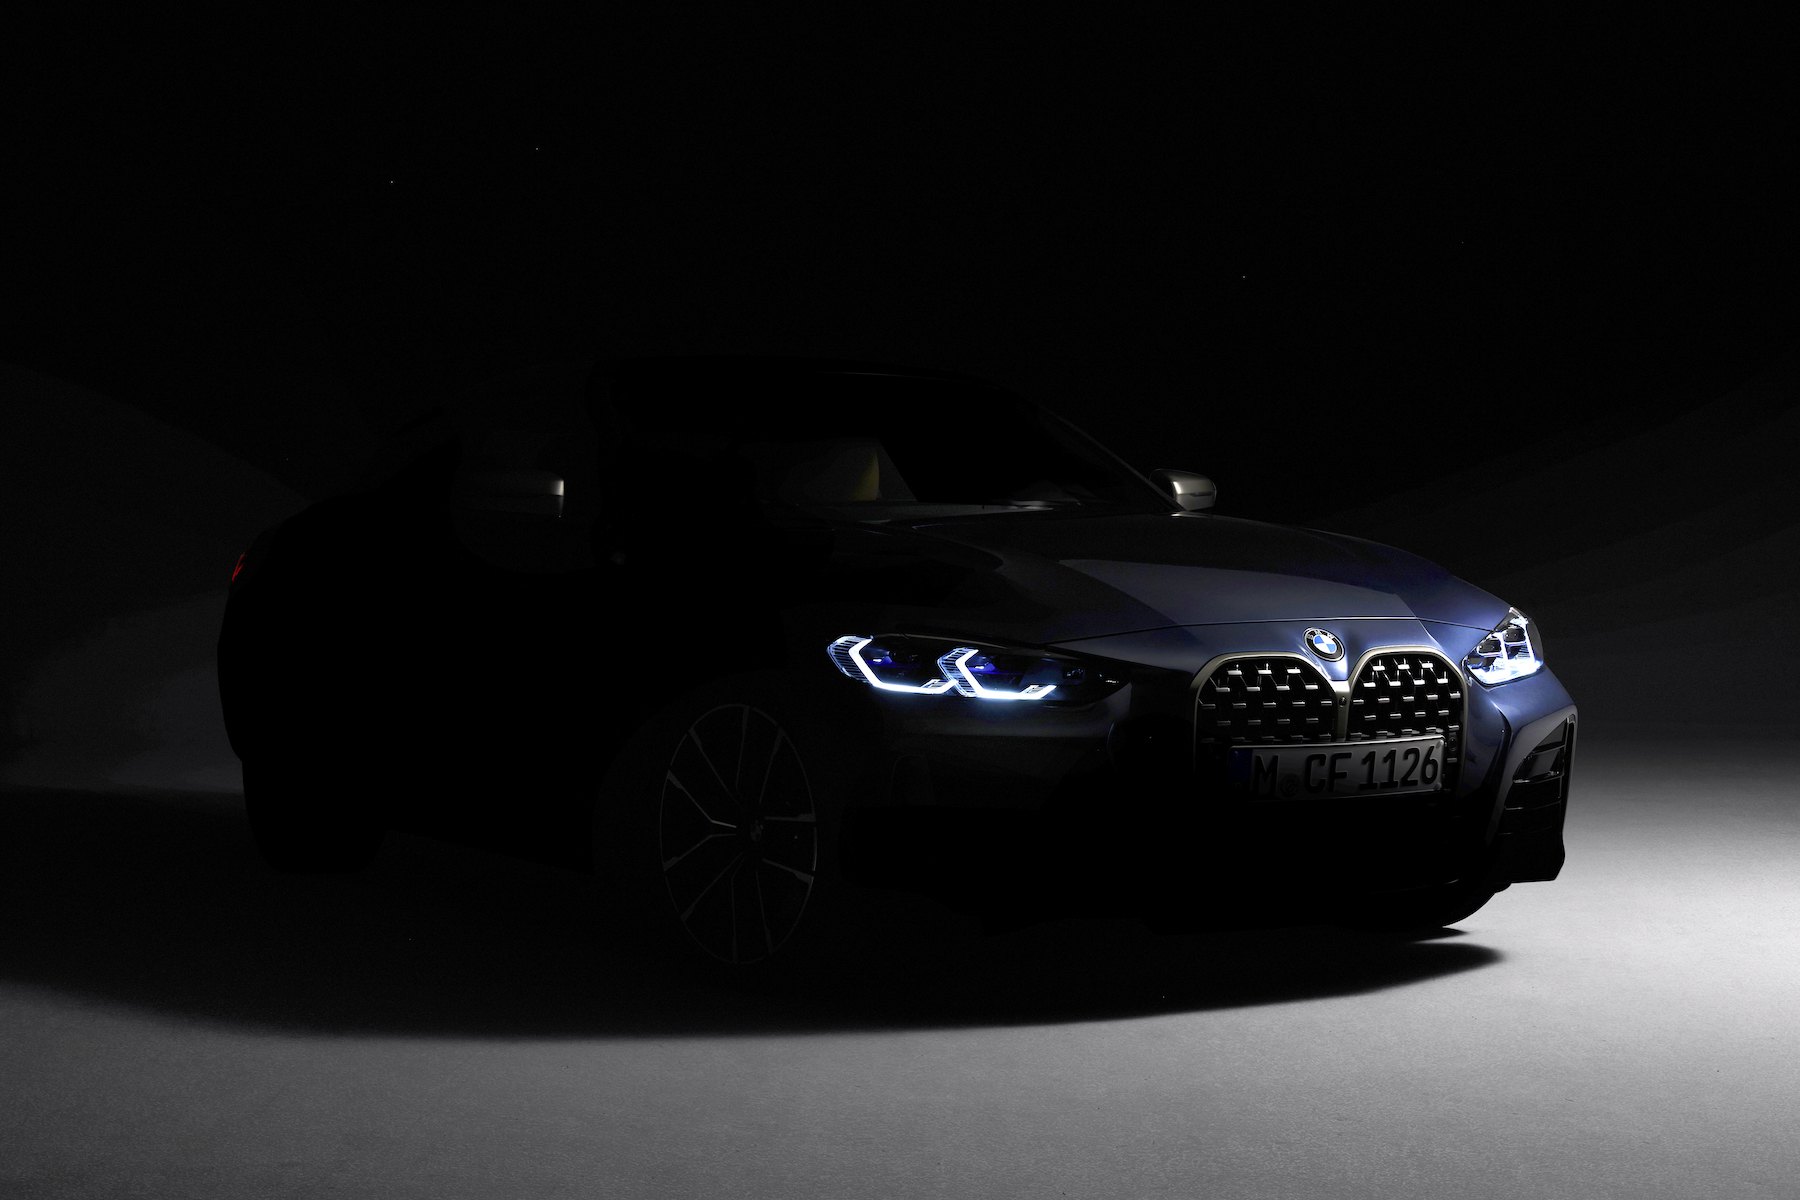 BMW teases new 4 Series Coupe ahead of full unveiling next week